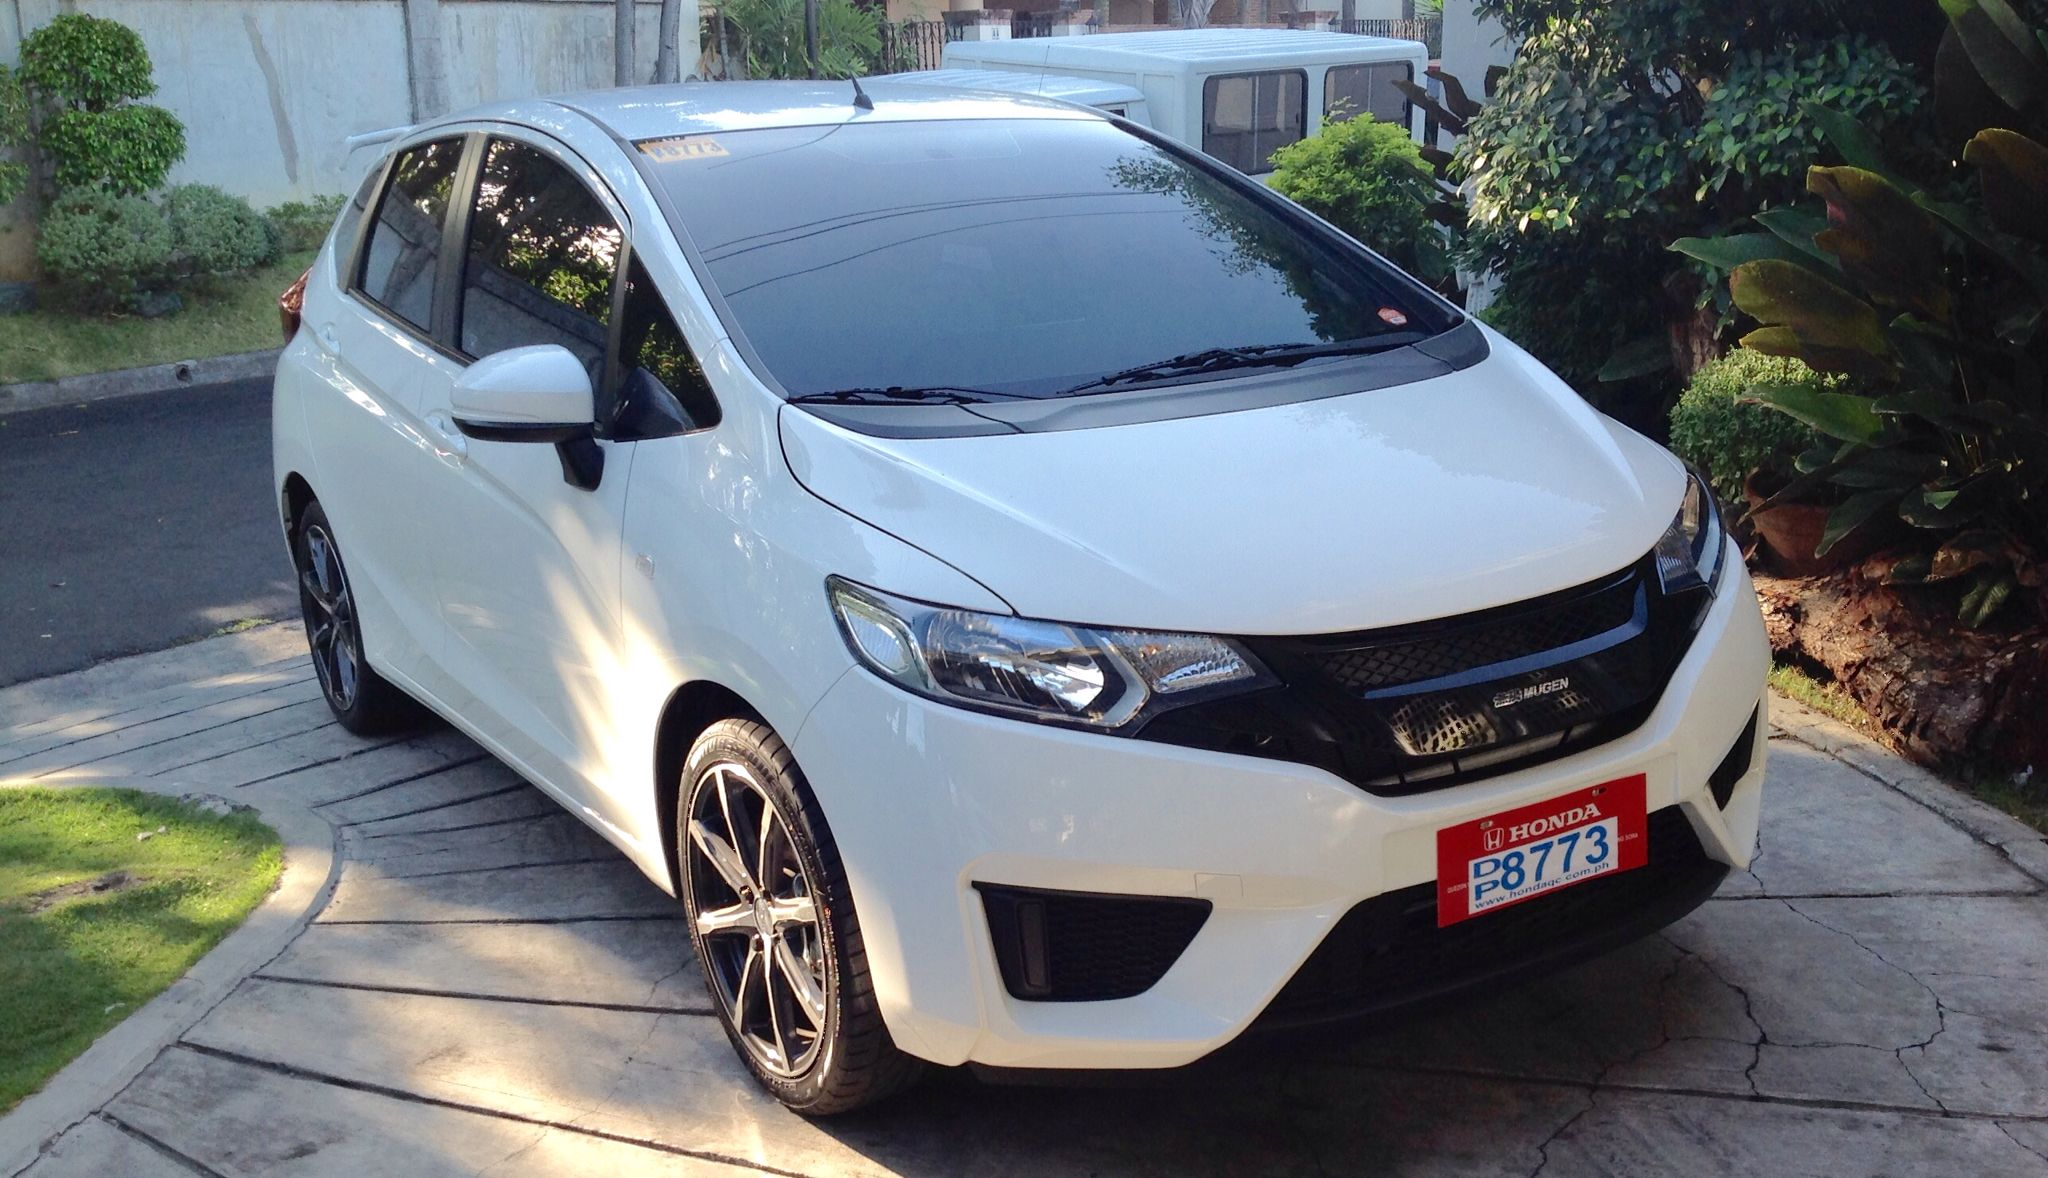 2016 honda jazz ex with sports pack | cars & motorcycles that i